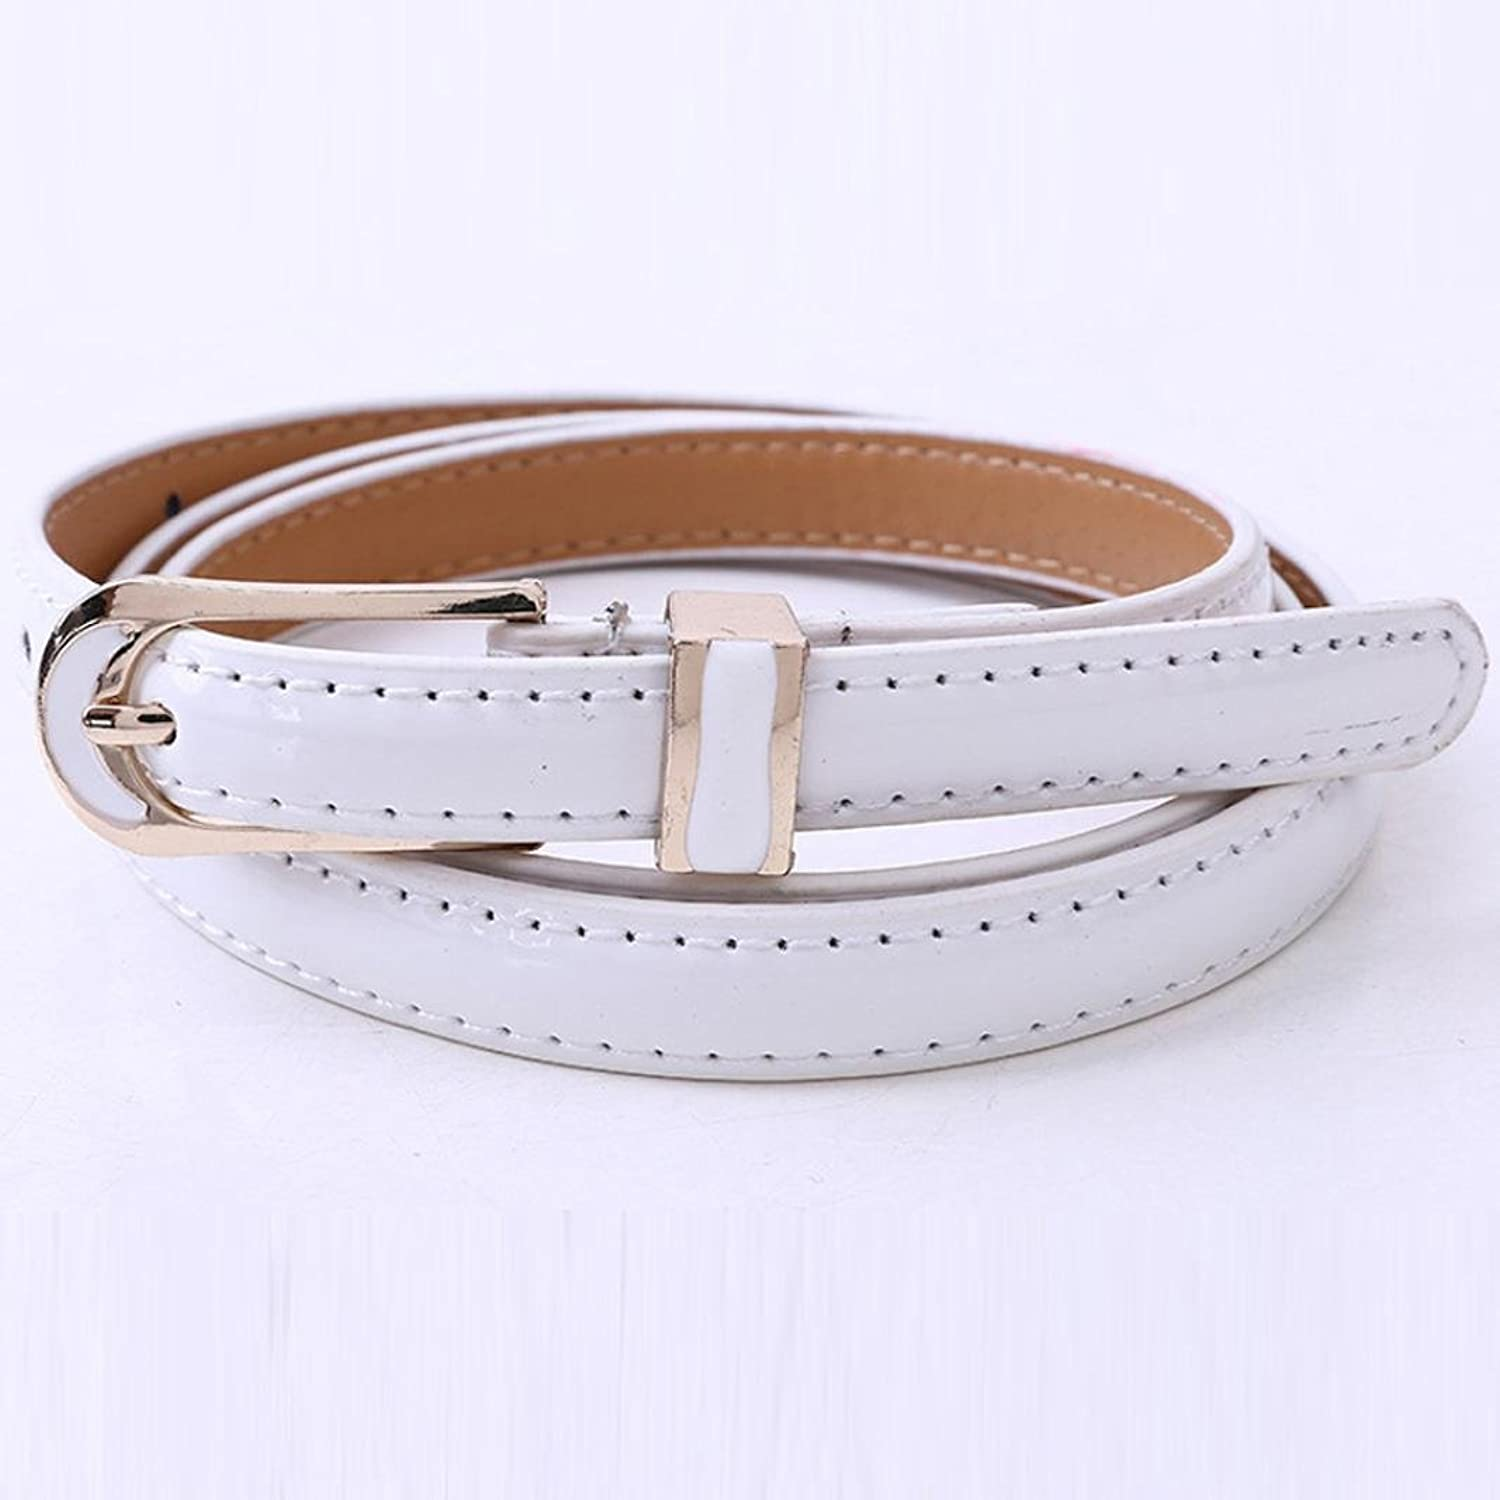 Allywit New Fashion Women's Vintage Accessories Casual Thin Leisure Leather Belt